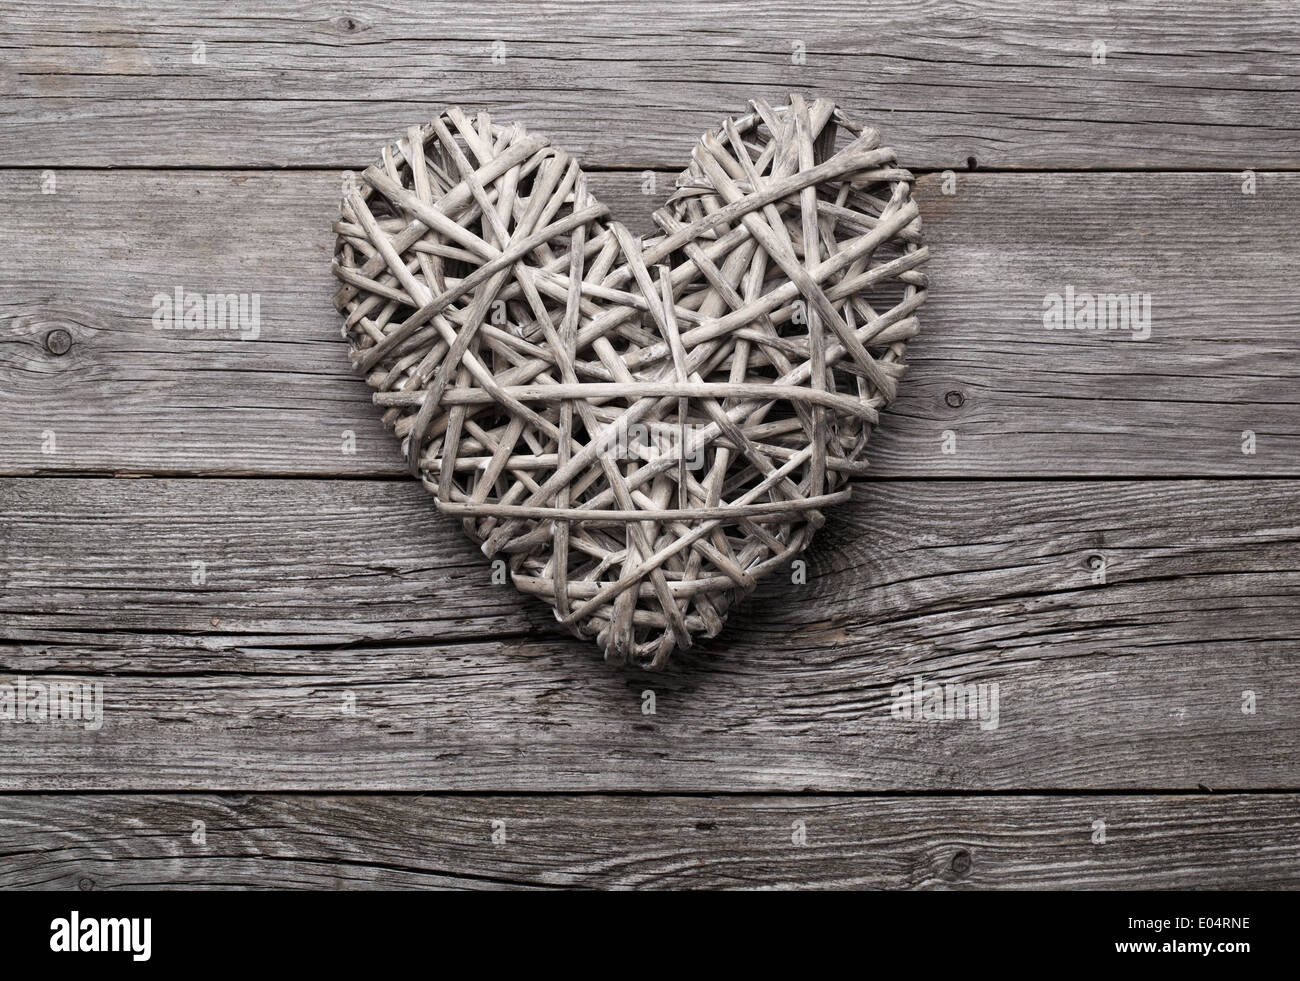 Heart shaped decoration made of straw. - Stock Image